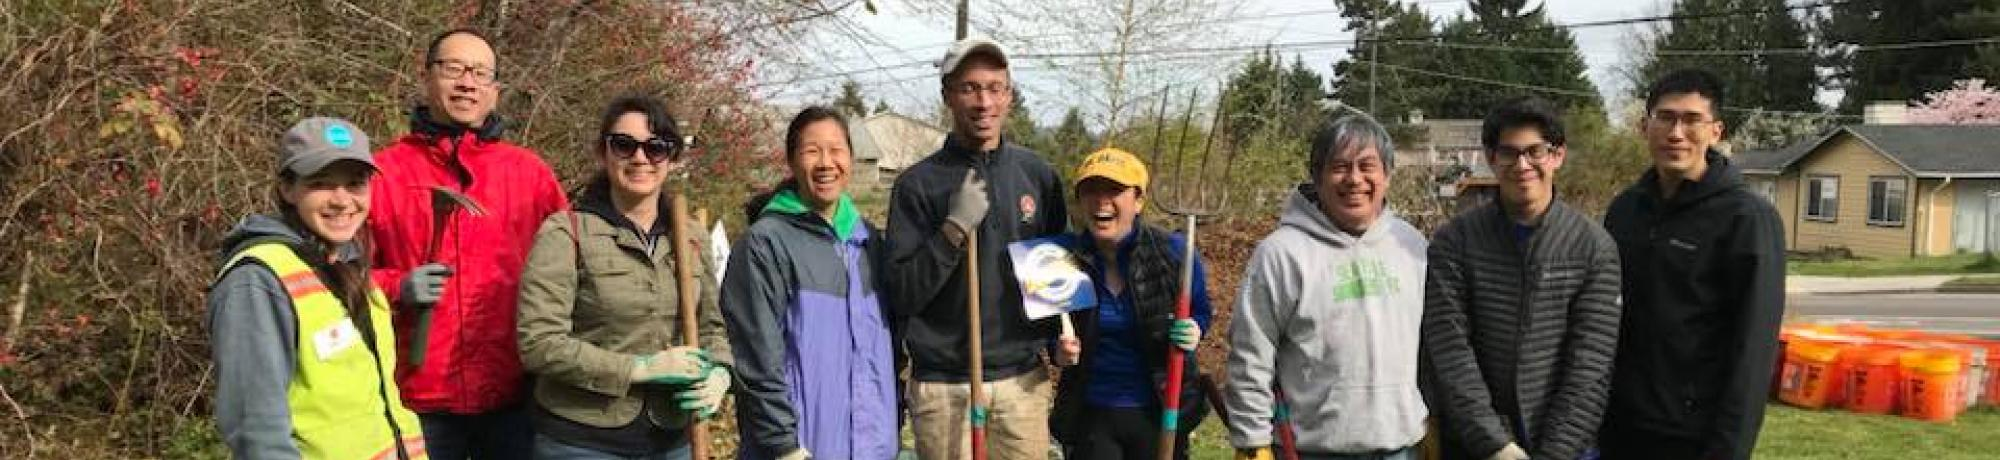 A group of UC Davis alumni in Seattle at a community service day posing with shovels outdoors